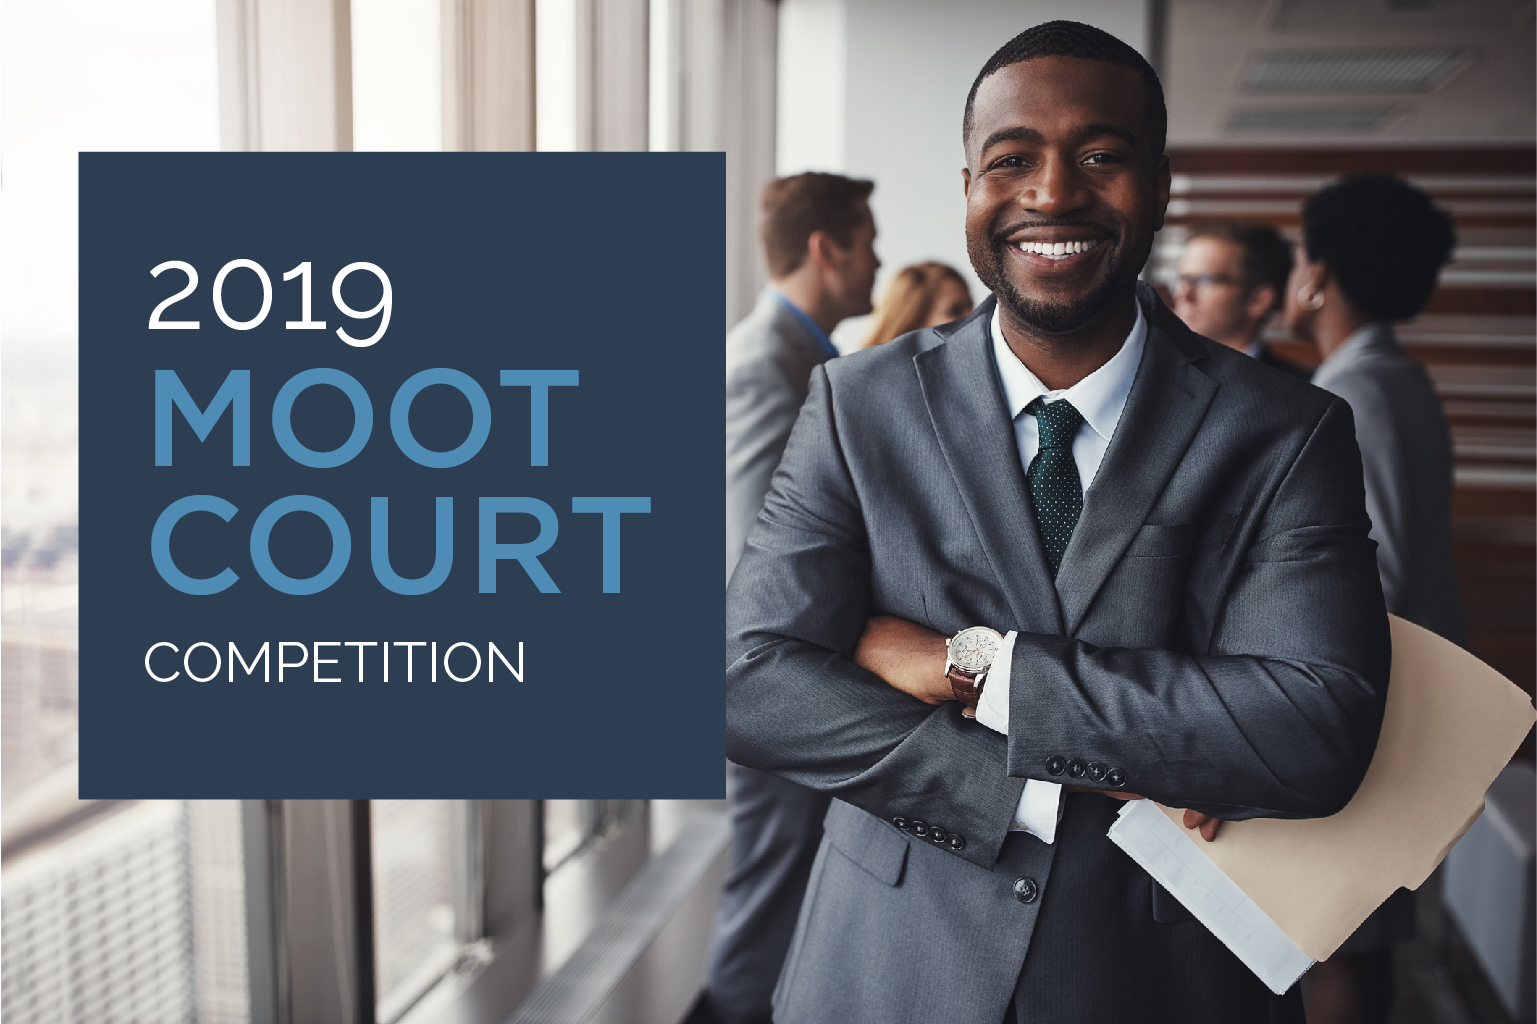 FLAYLD 2019 Moot Court Competition with young male lawyer in grey suit smiling at camera in office